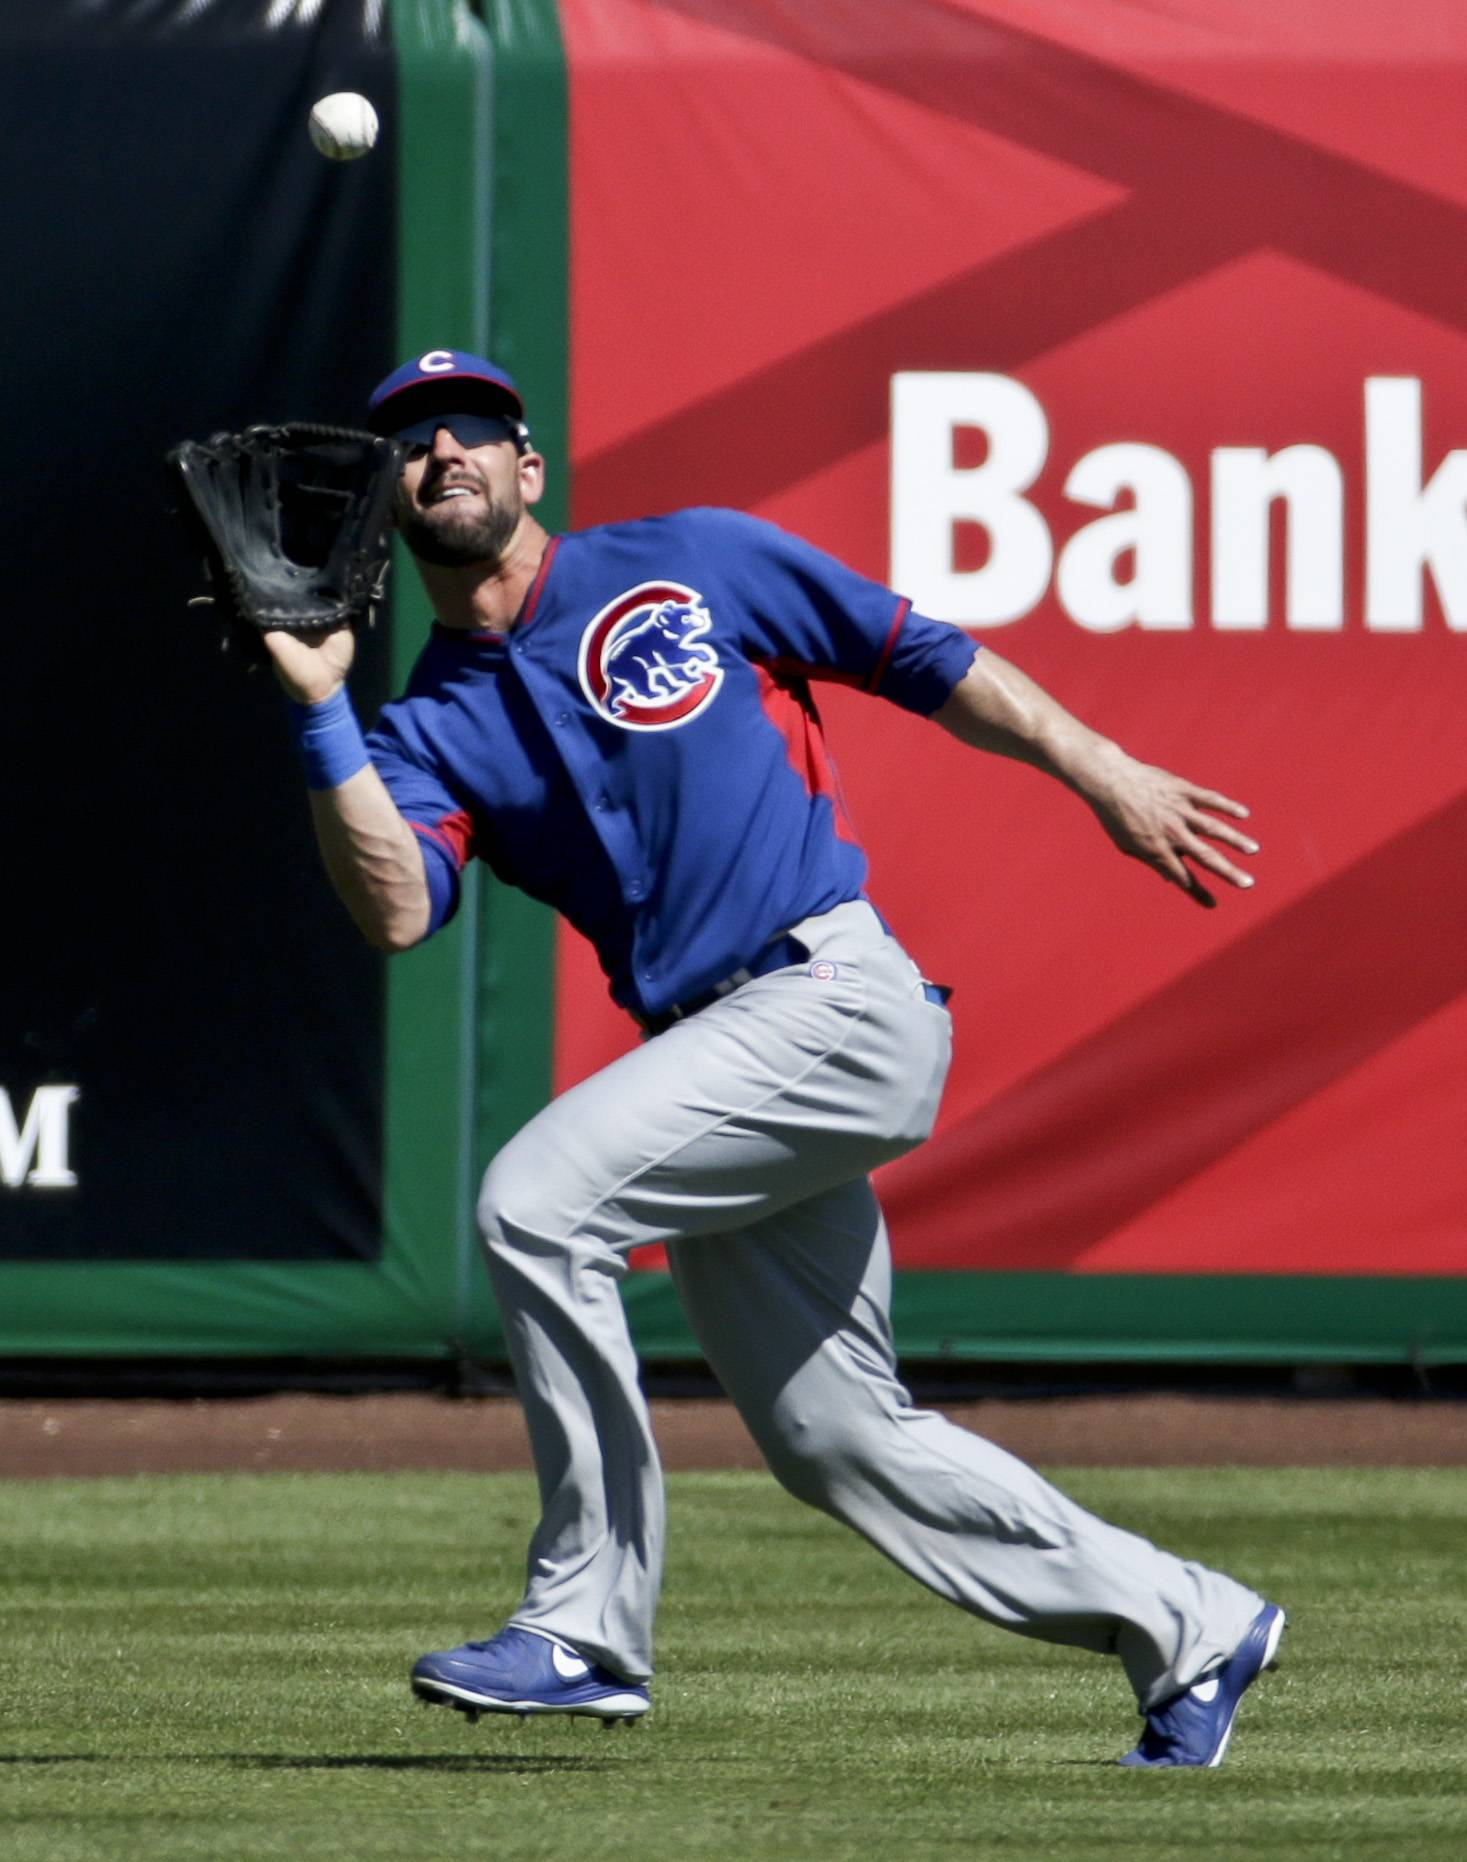 Chicago Cubs center fielder Ryan Kalish catches a fly ball hit by San Francisco Giants' Brandon Belt during the first inning of a spring exhibition baseball game Monday in Scottsdale, Ariz.